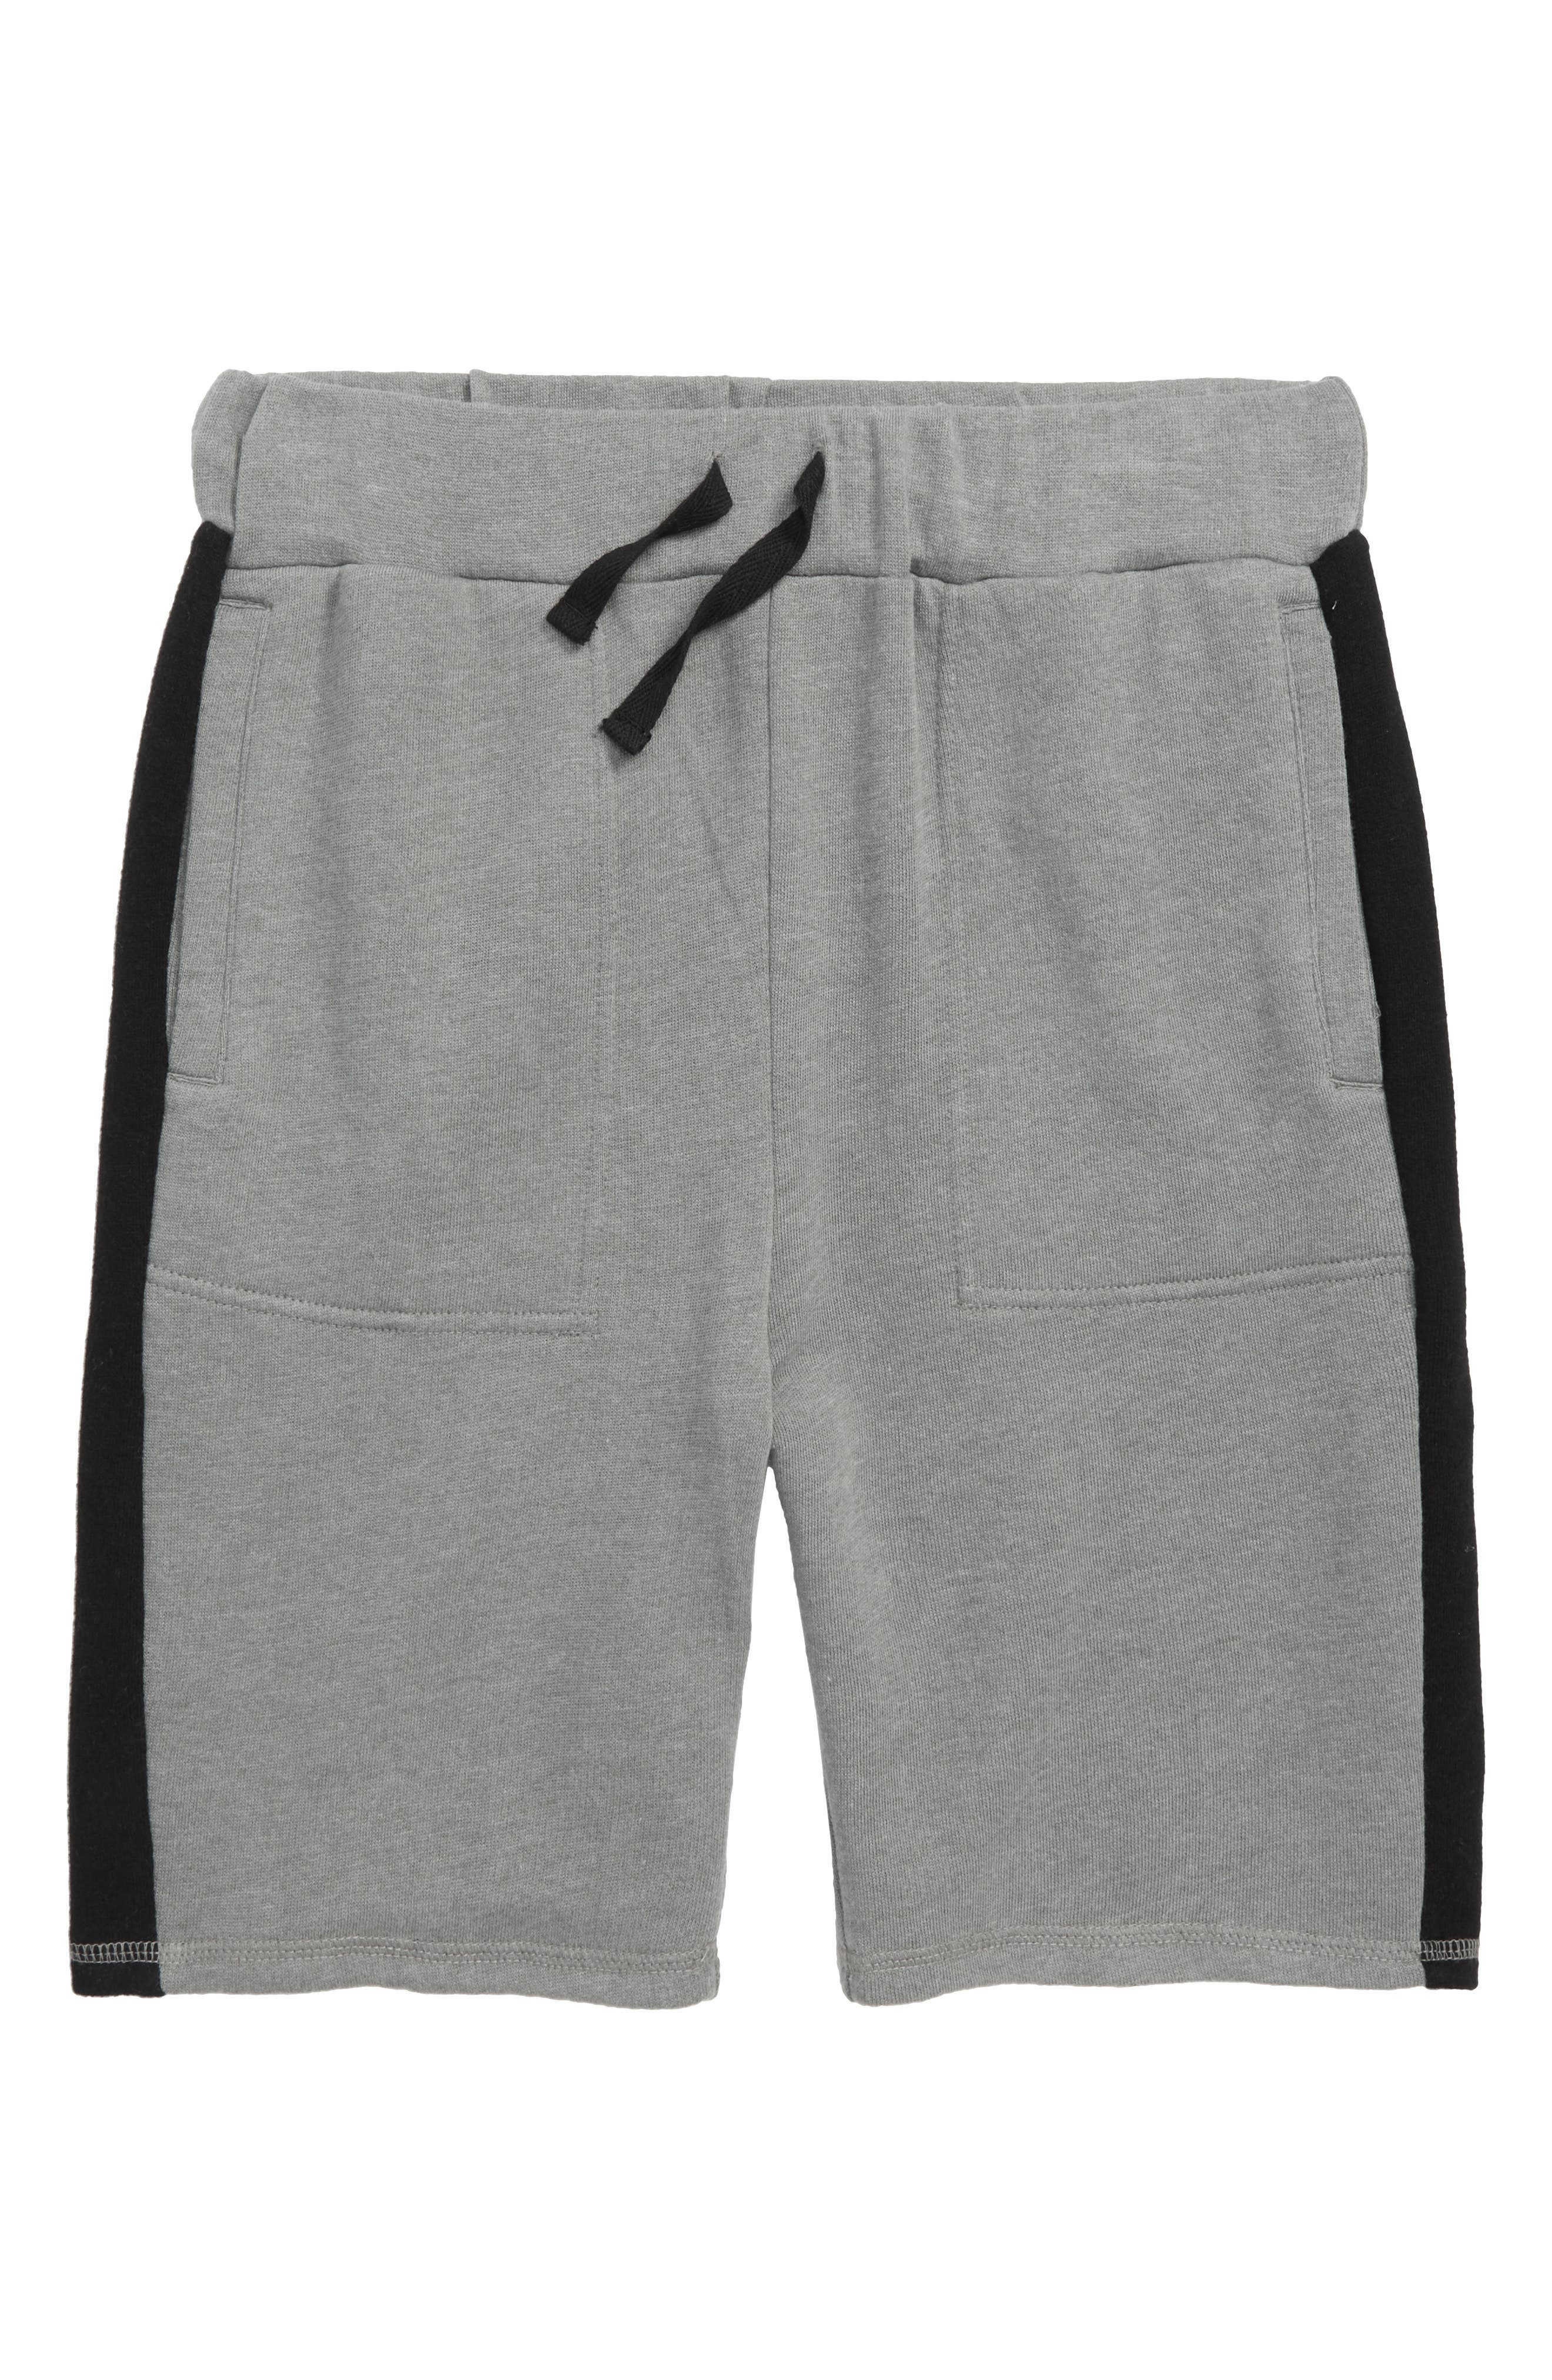 Washed Out Shorts,                         Main,                         color, 021